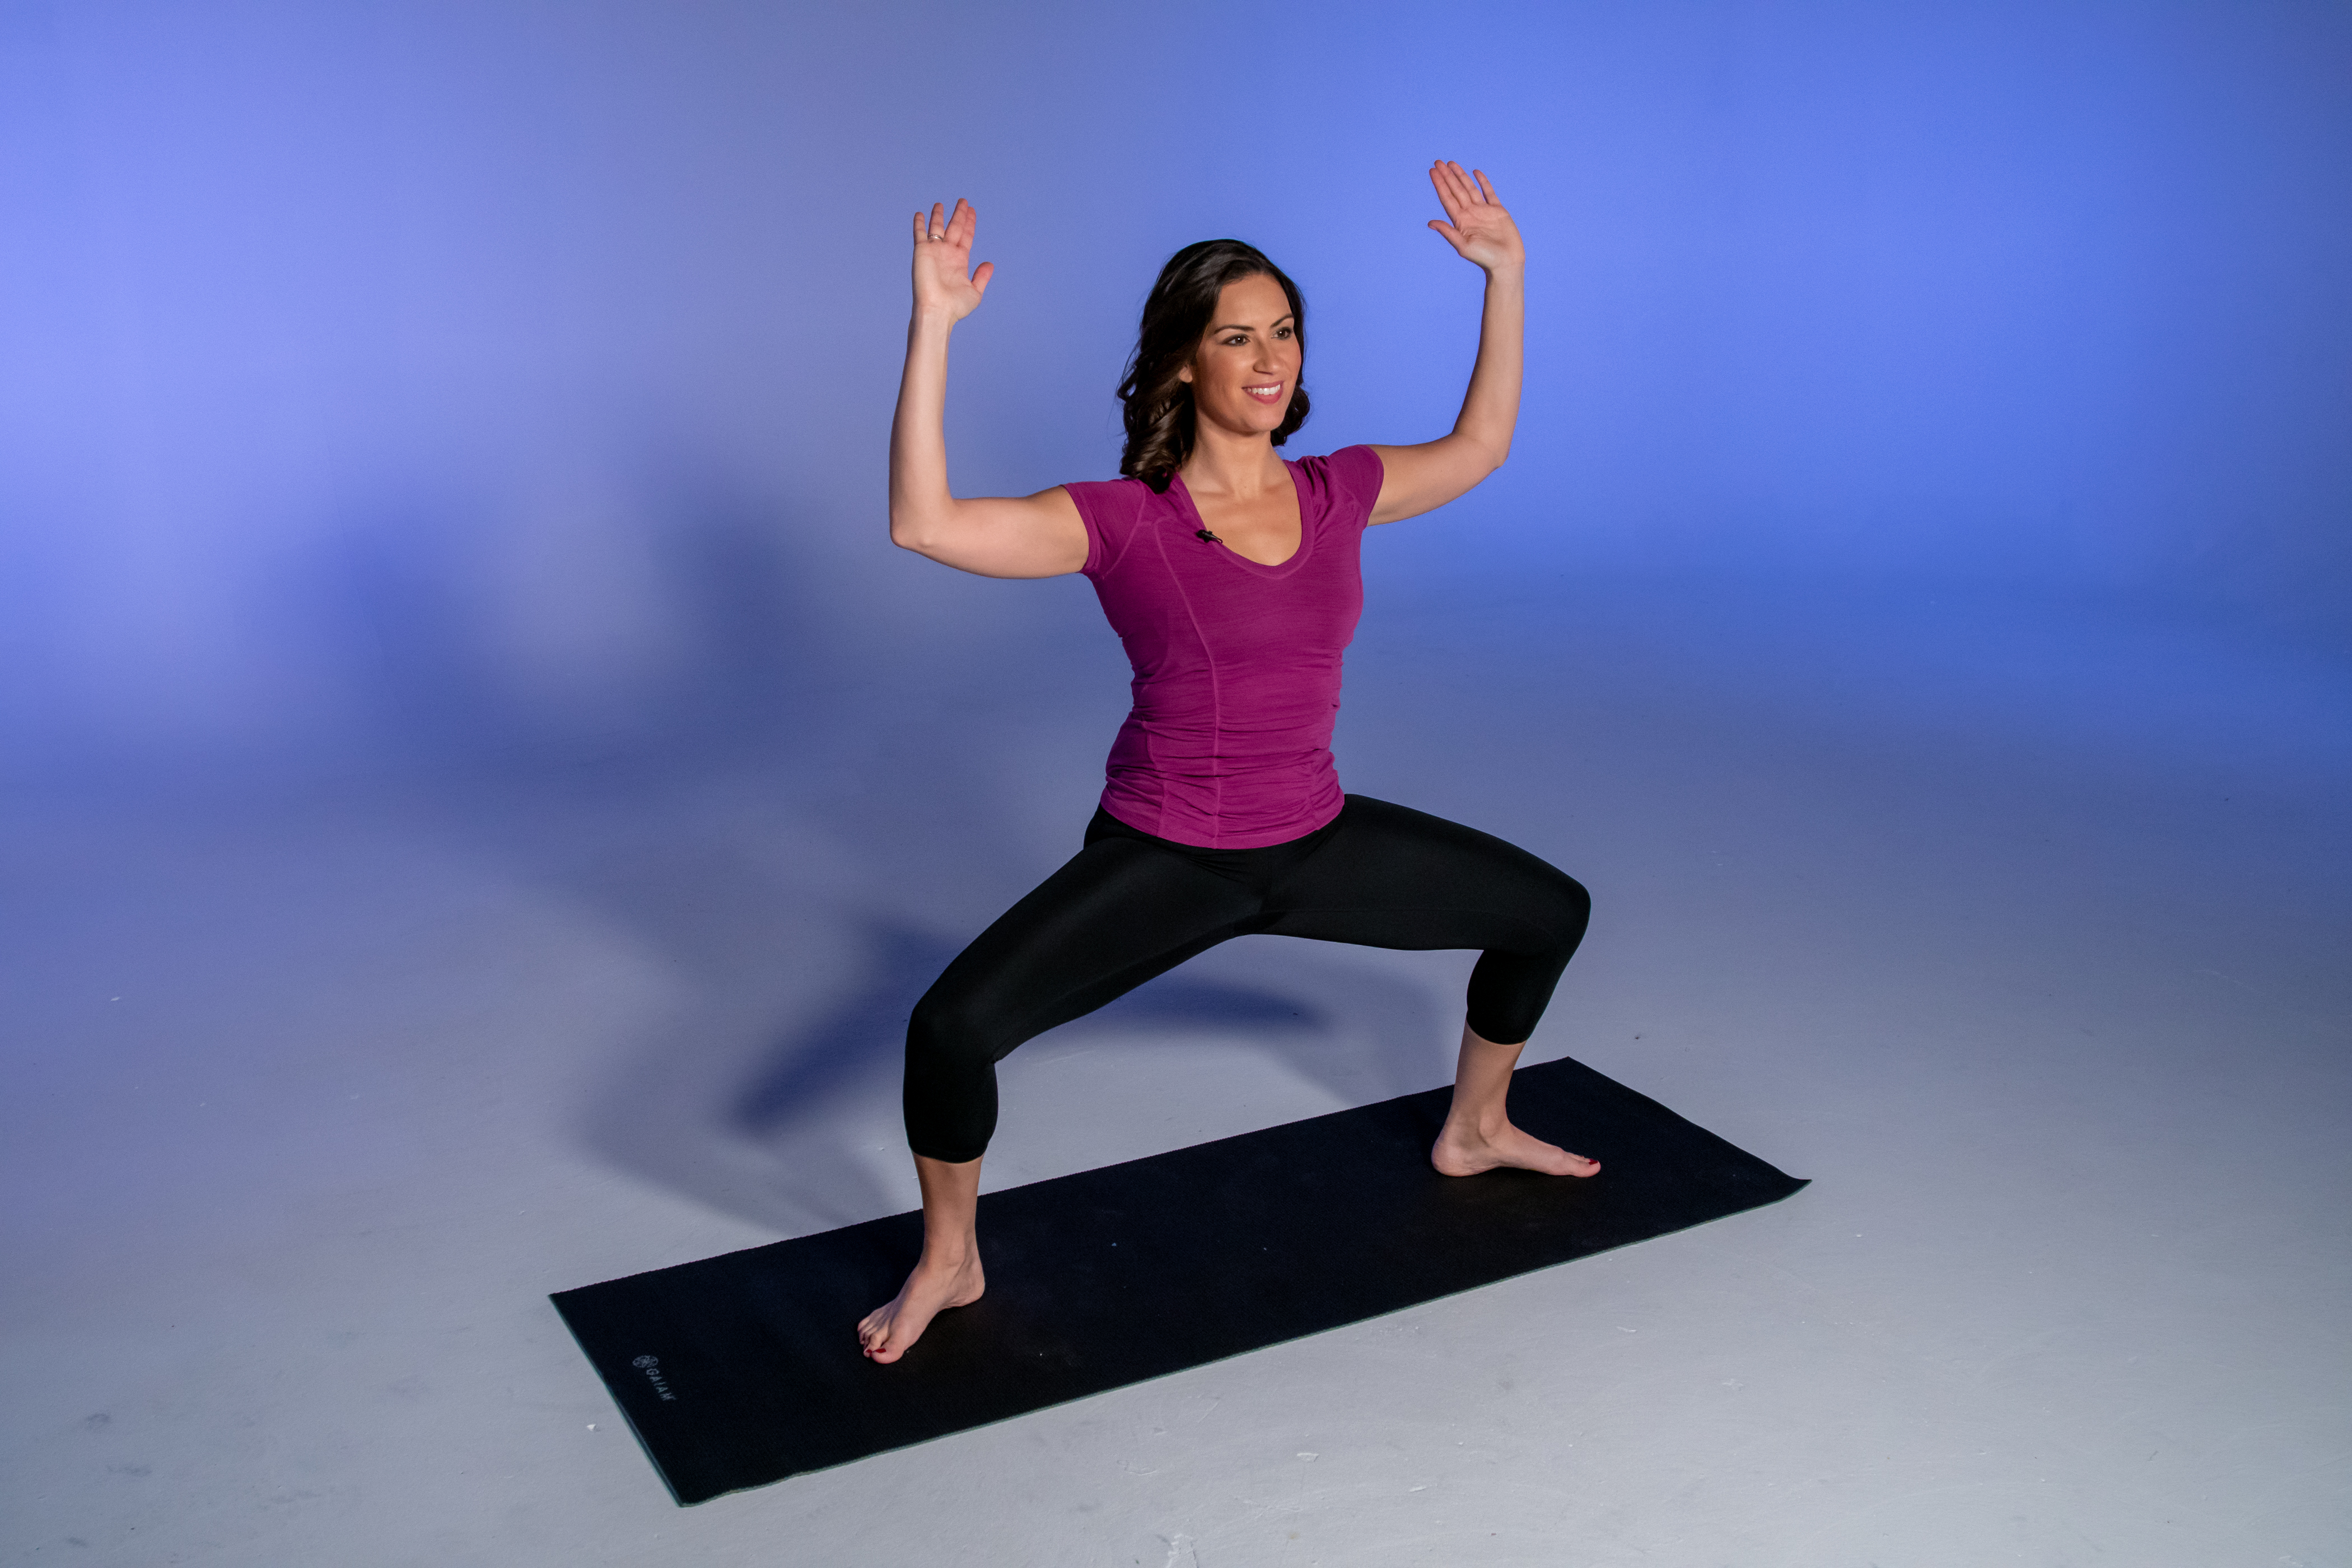 Health and fitness expert Stephanie Mansour demonstrates the first step in a bright goddess yoga pose.